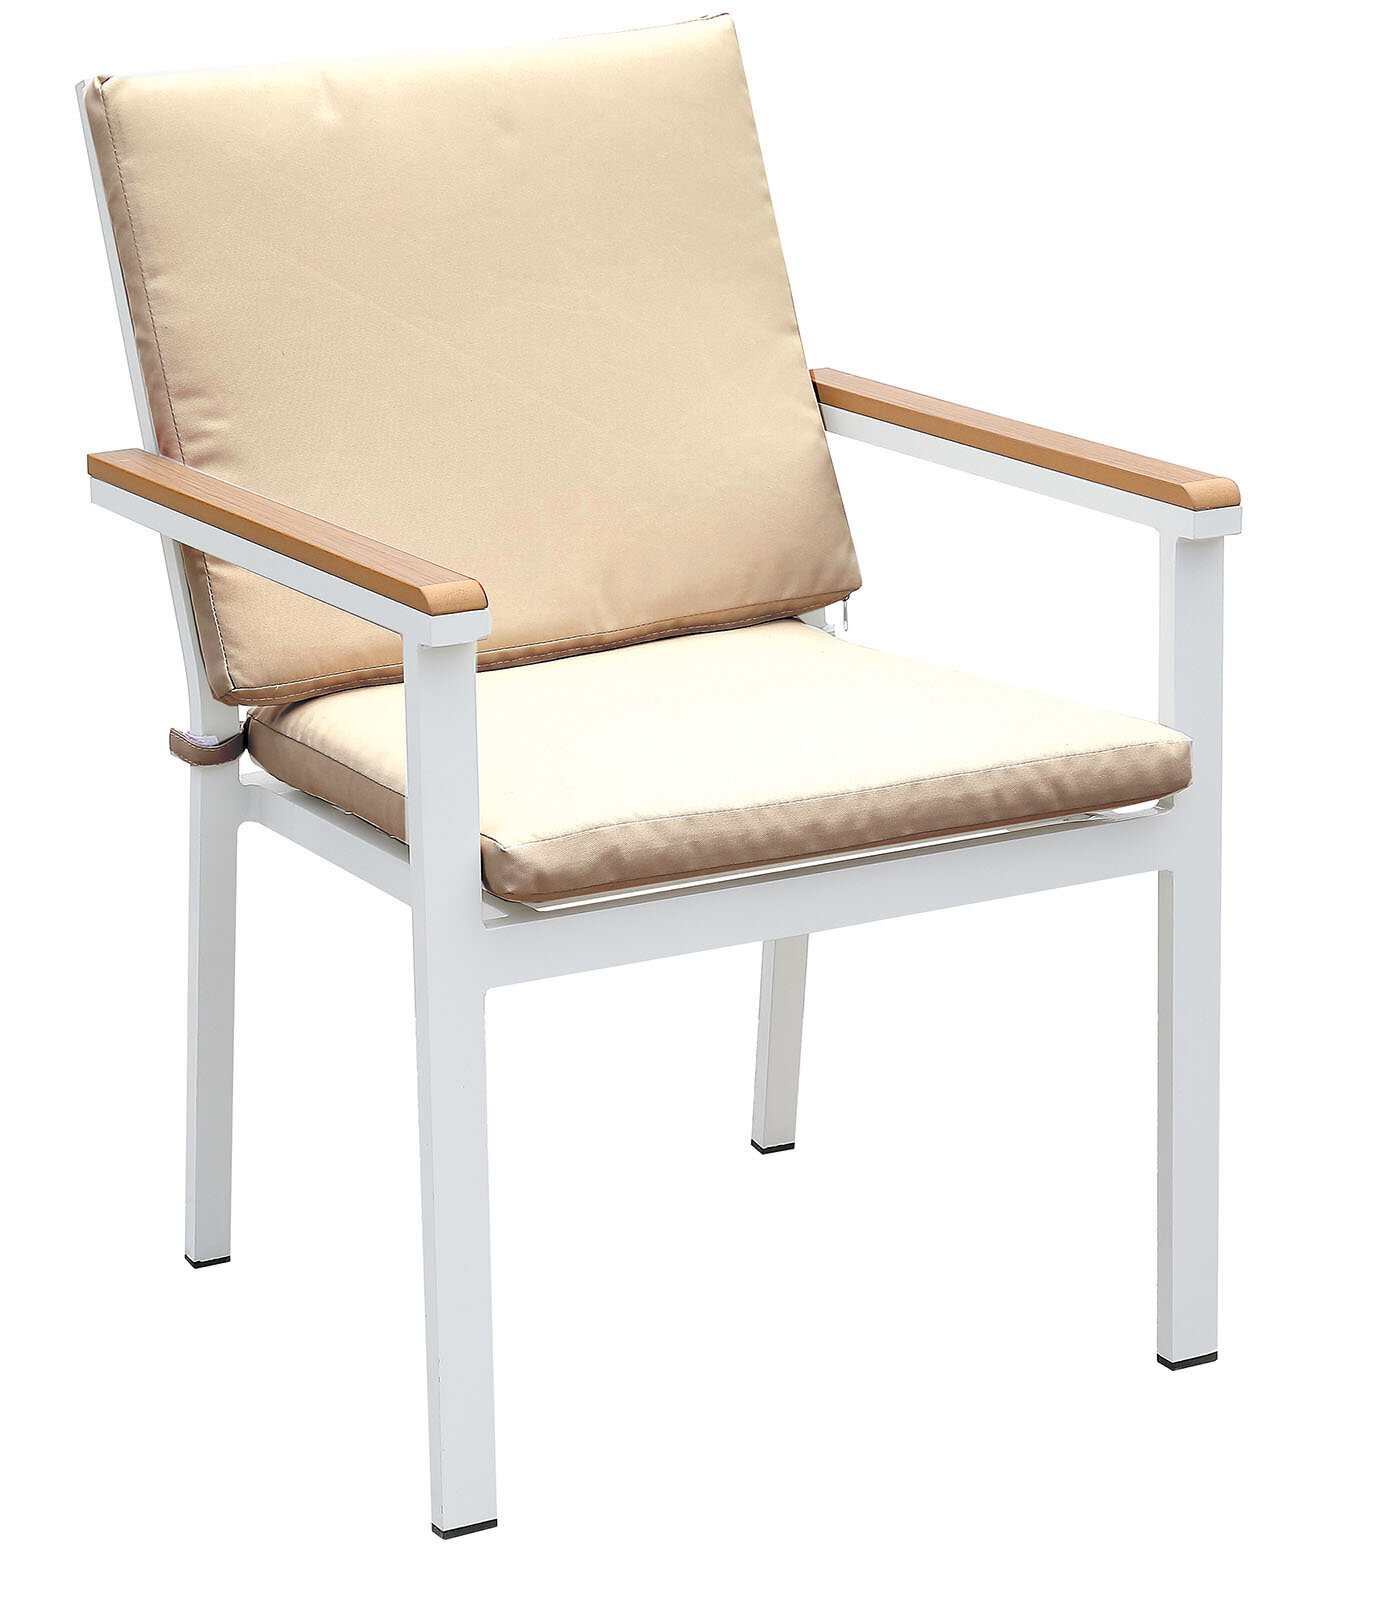 Salter Patio Dining Chair With Cushion